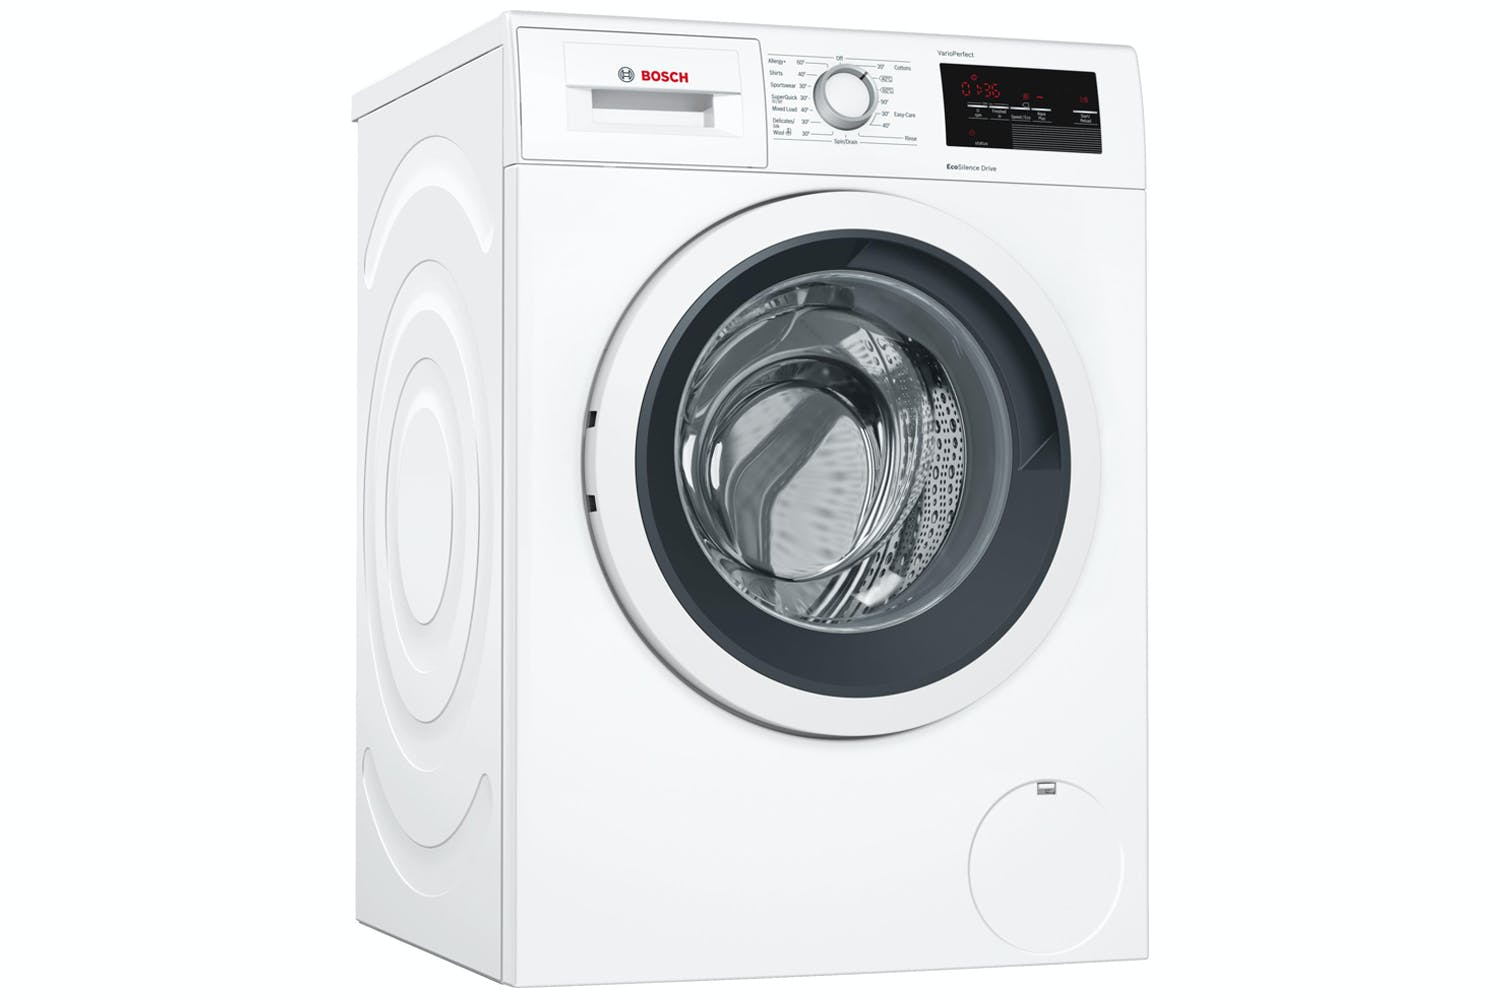 bosch series 6 9kg automatic washing machine wat28371gb. Black Bedroom Furniture Sets. Home Design Ideas